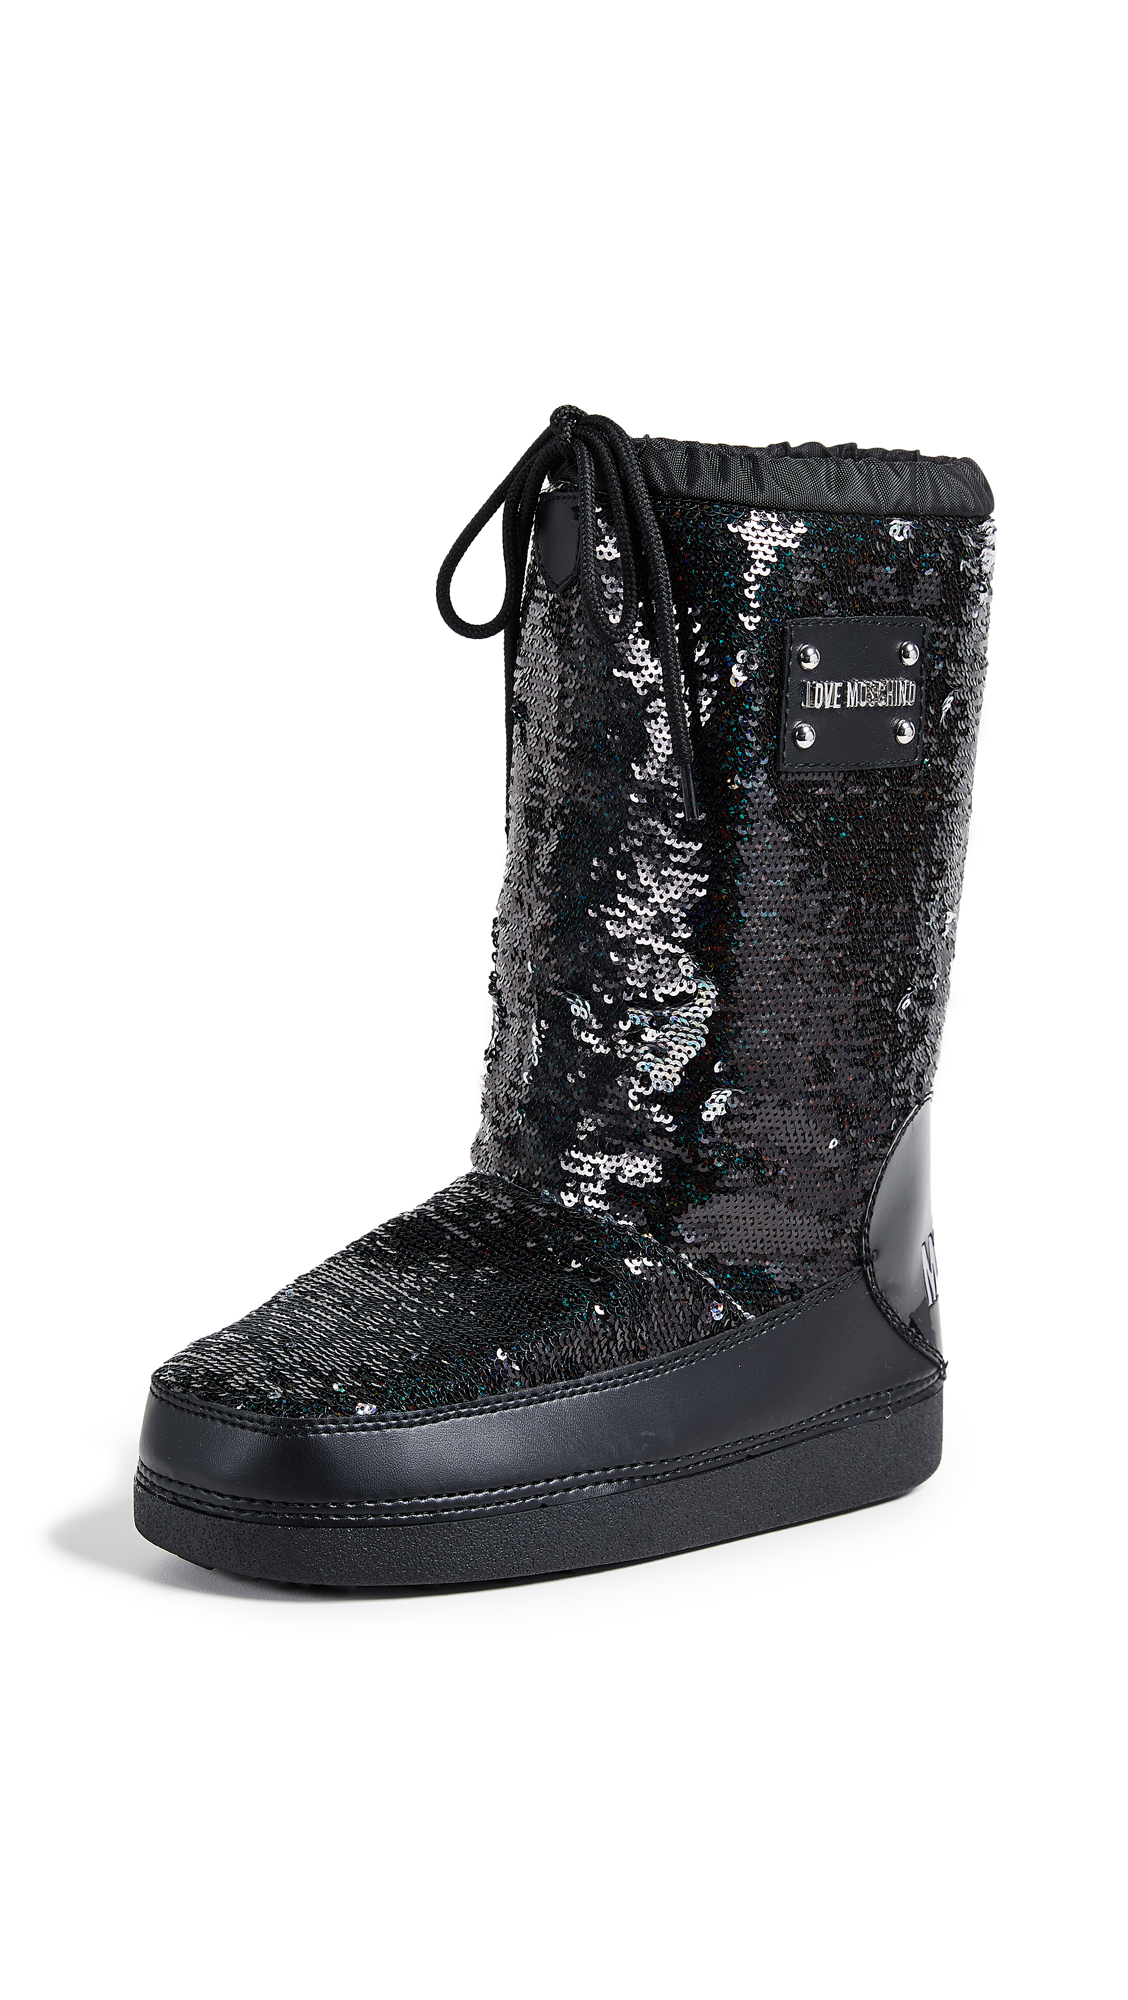 Moschino Love Moschino Sequin Snow Boots